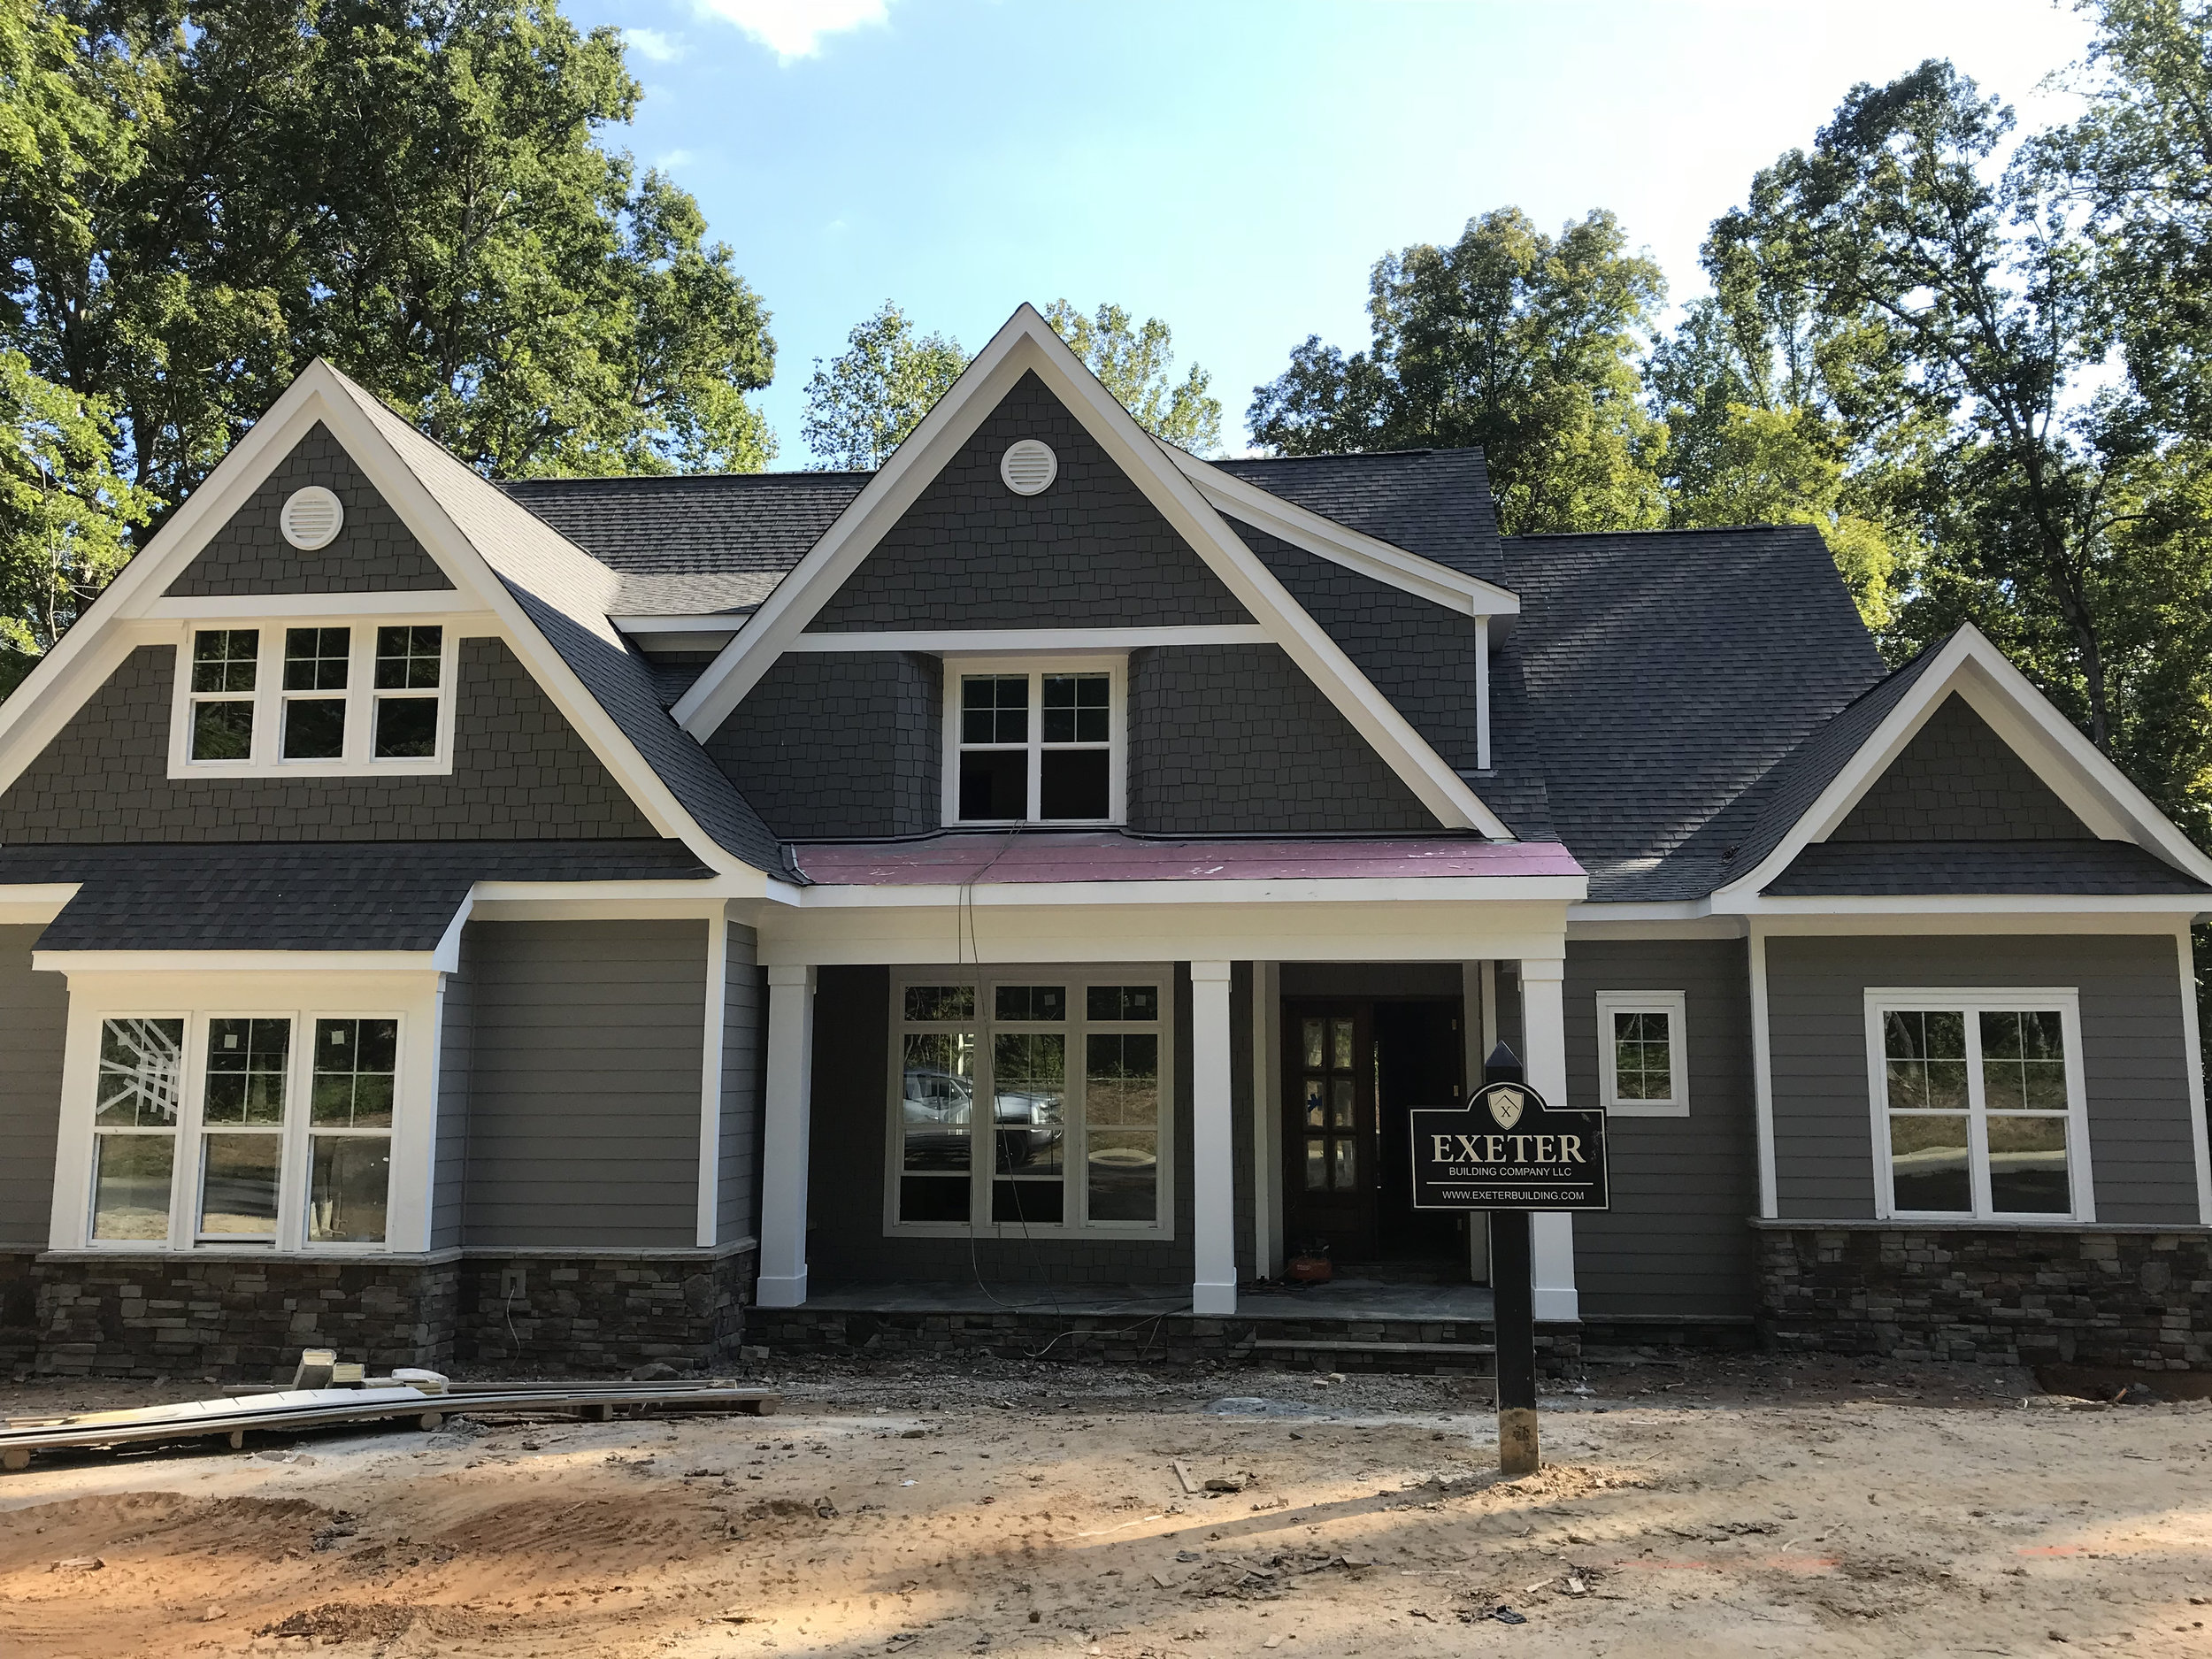 Wake Forest - Lakestone - Premier Custom Homes built by Exeter Building Company